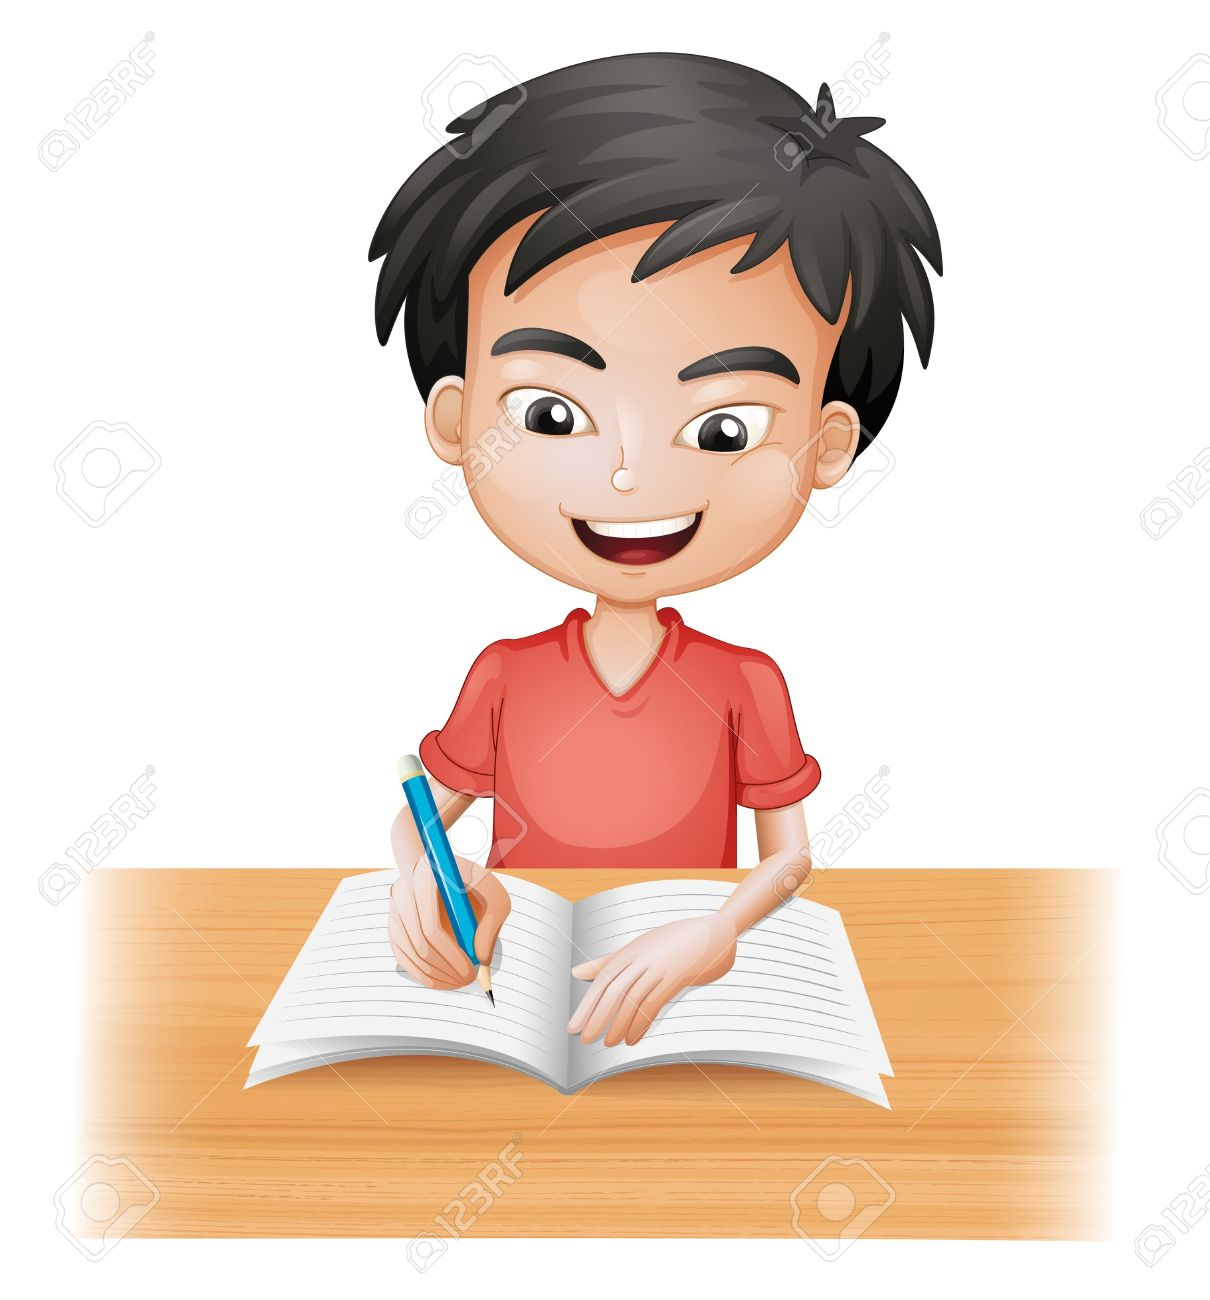 homework assignment cliparts stock vector and royalty homework assignment illustration of a smiling boy writing on a white background